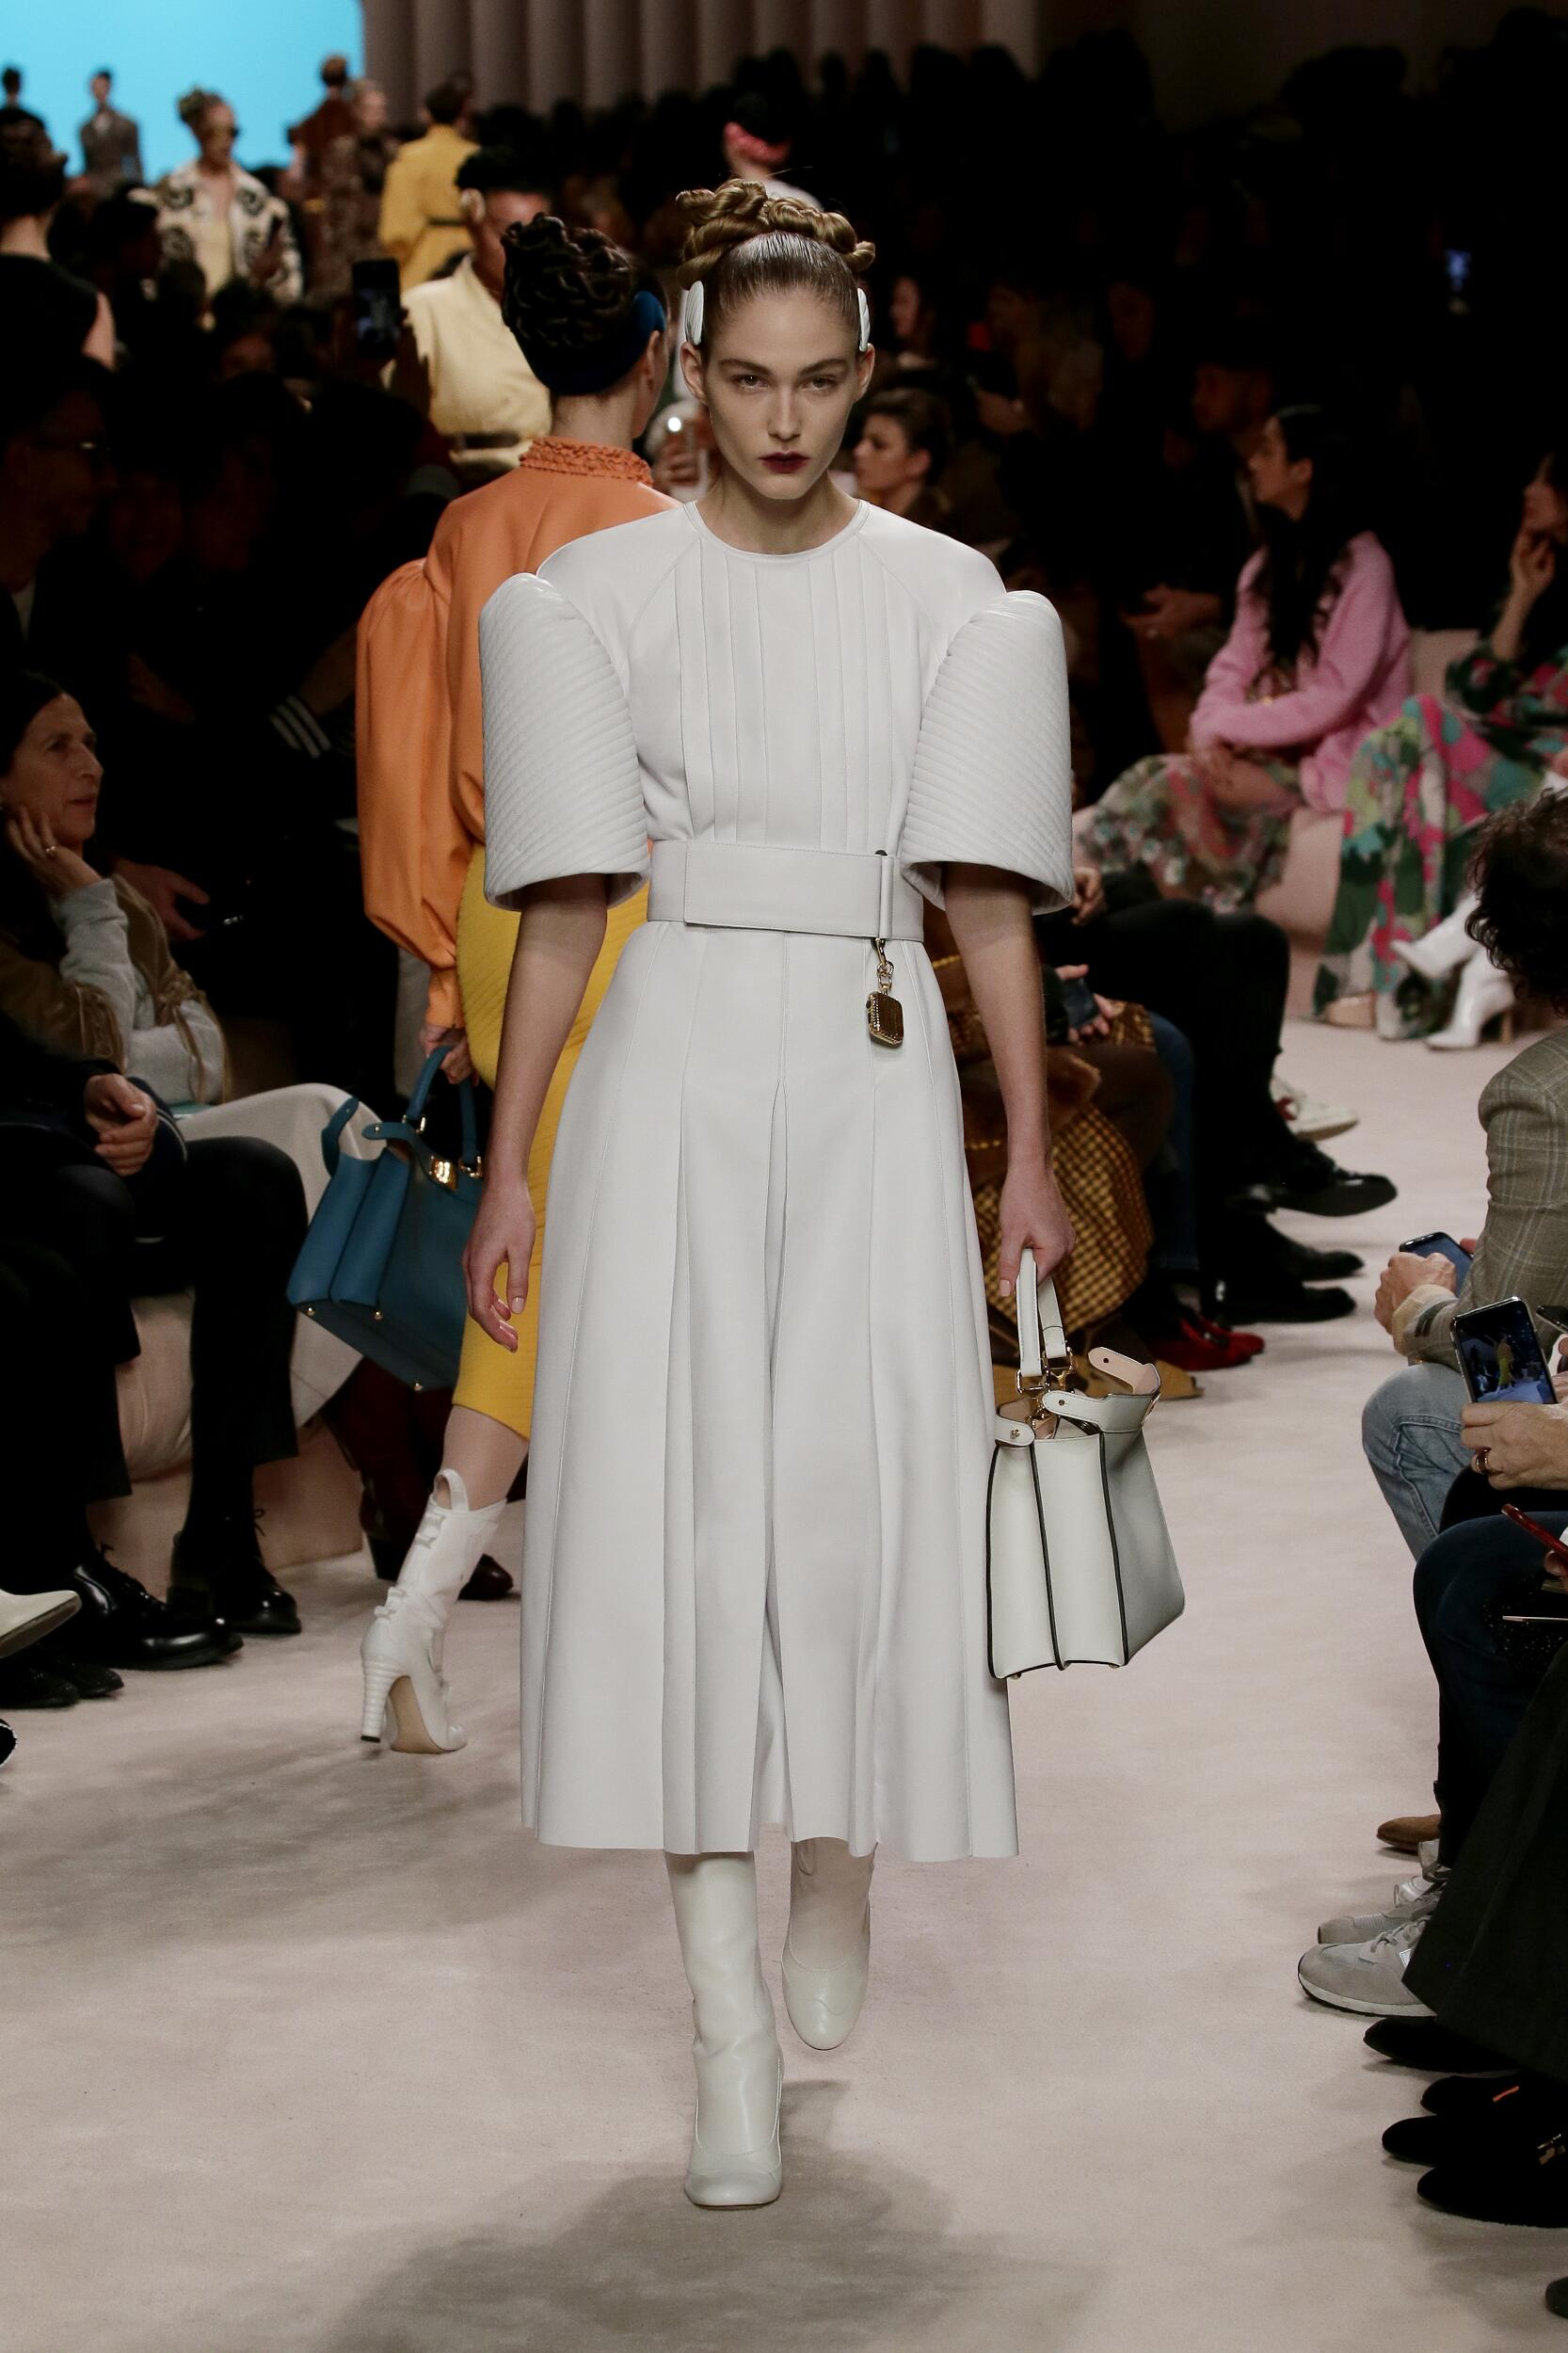 Catwalk Fendi Woman Fashion Show Winter 2020